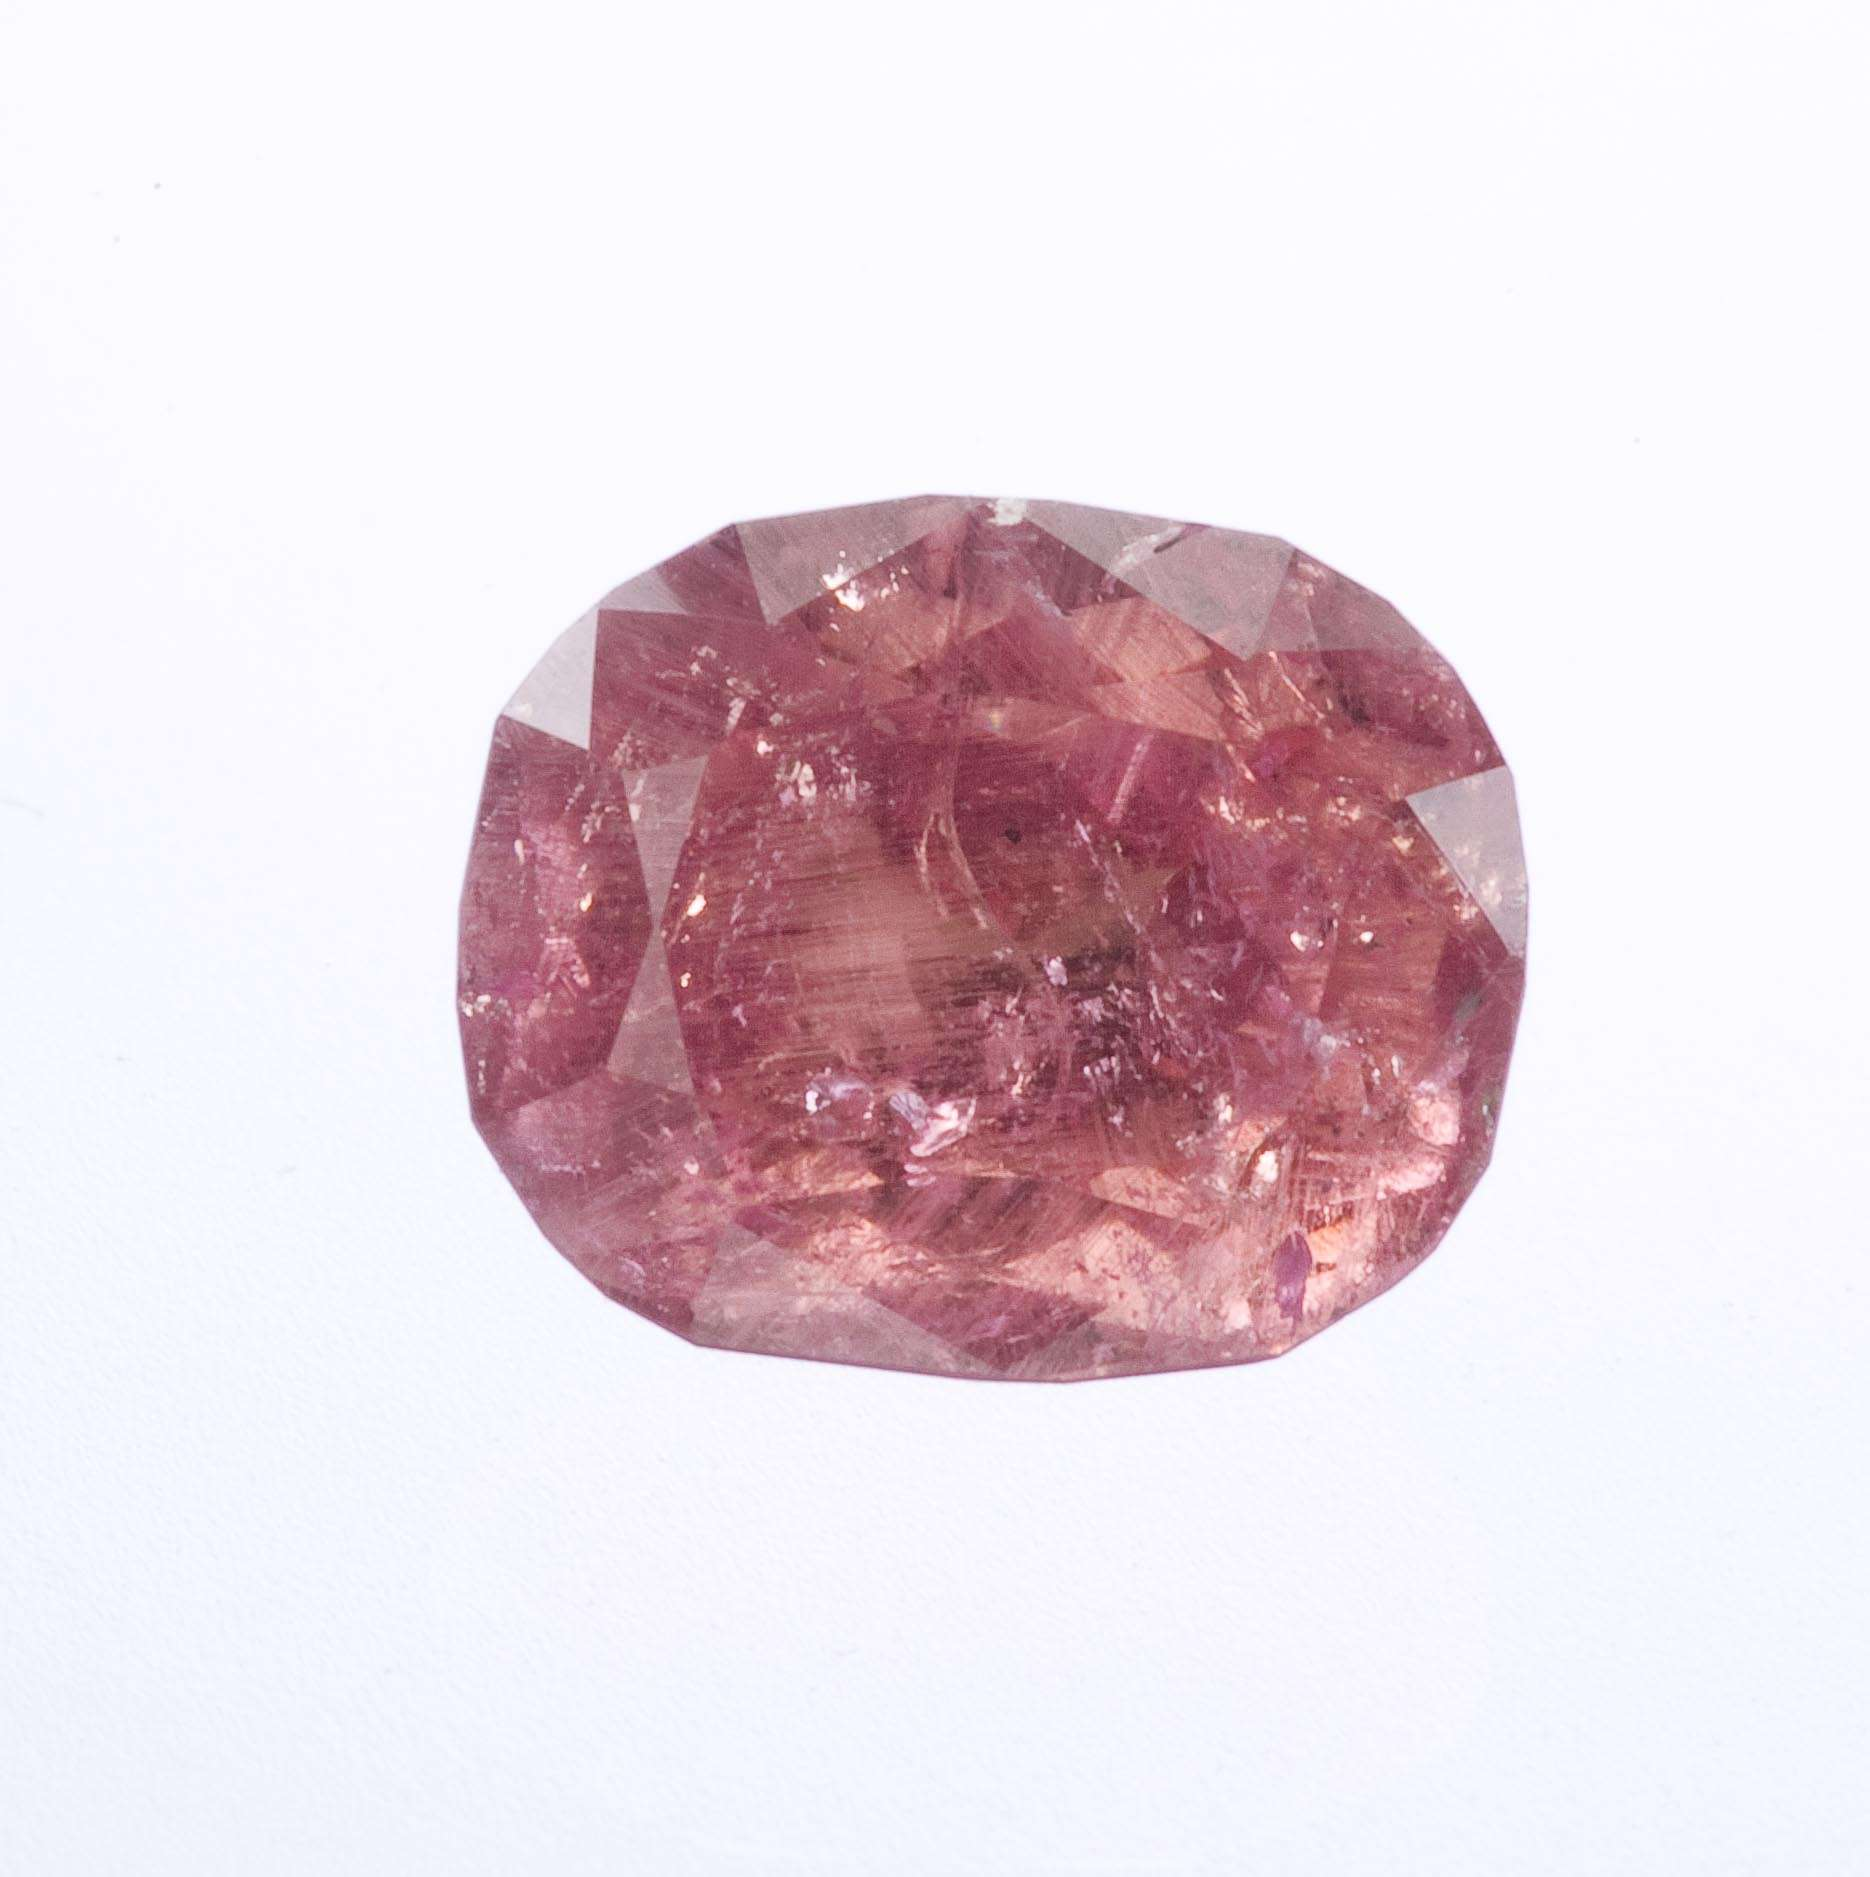 This new species gem red beryl 2002 brought market limited quantity No